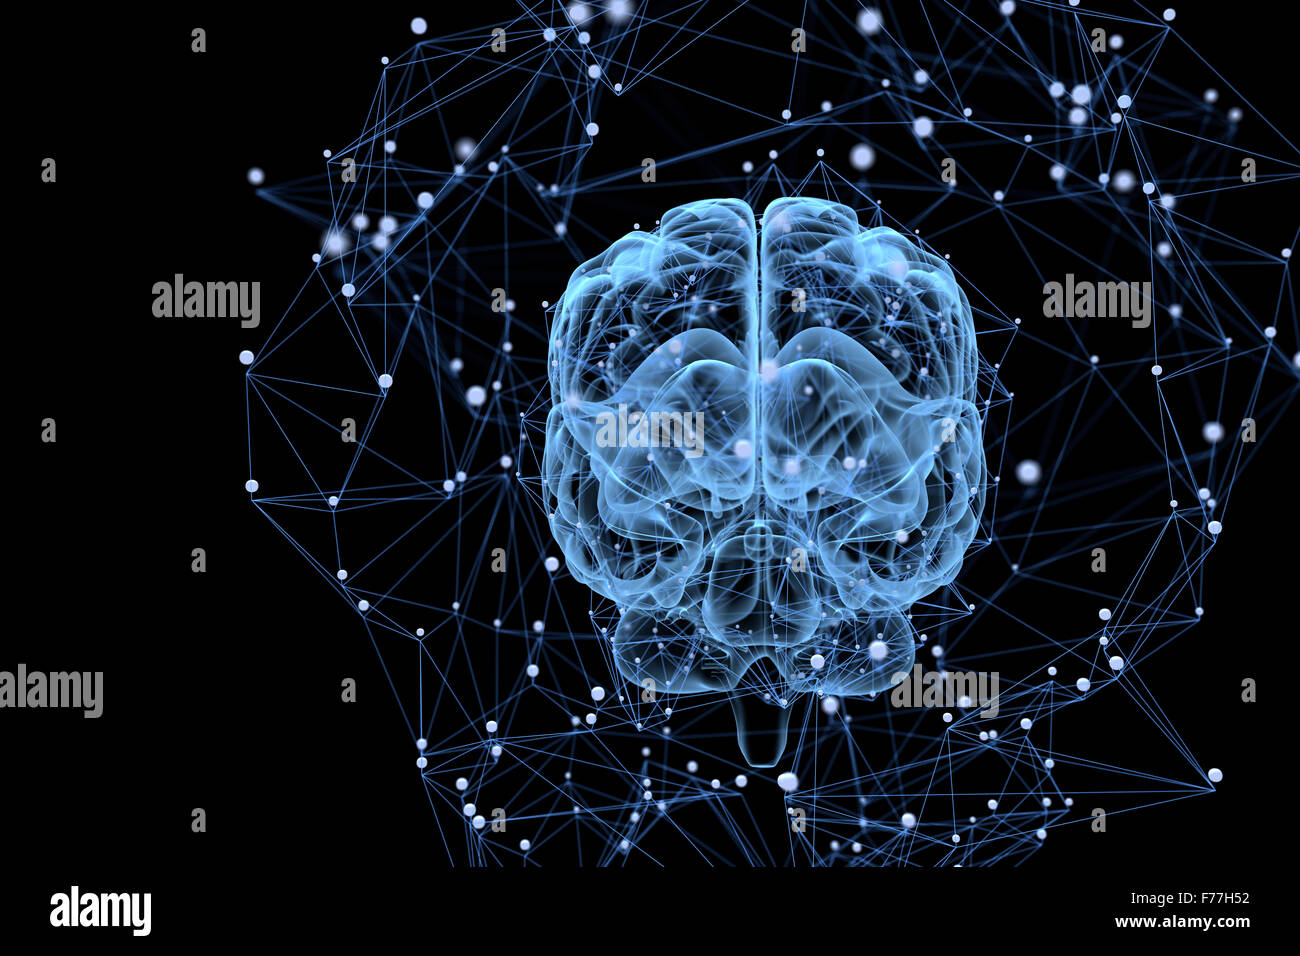 Illustration of the thought processes in the brain Stock Photo